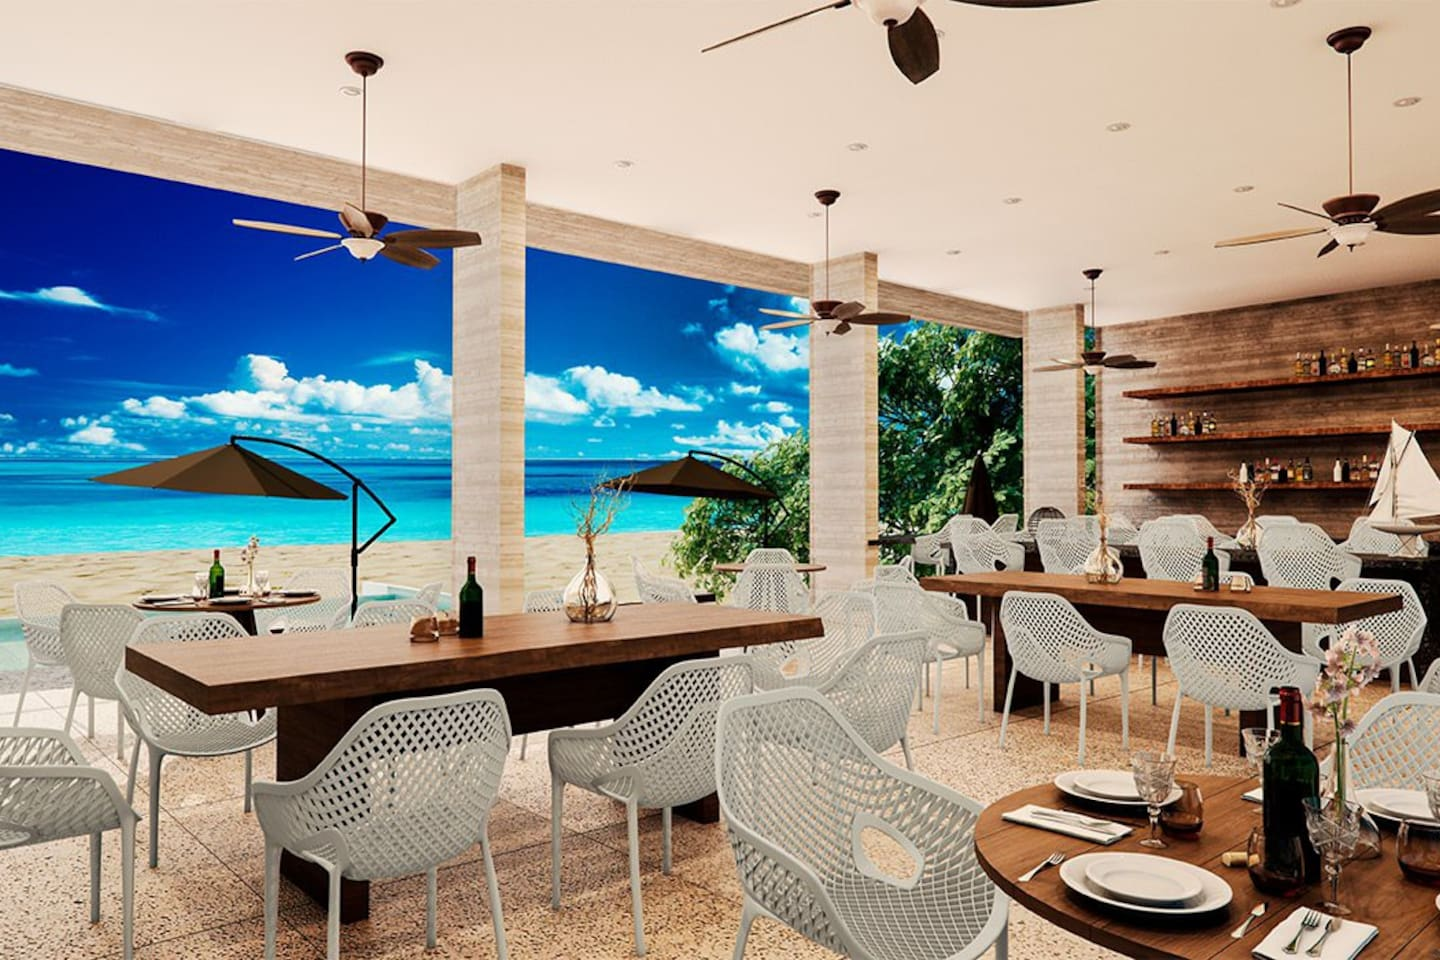 Exclusive Beach Club for Tao Owner and Guests